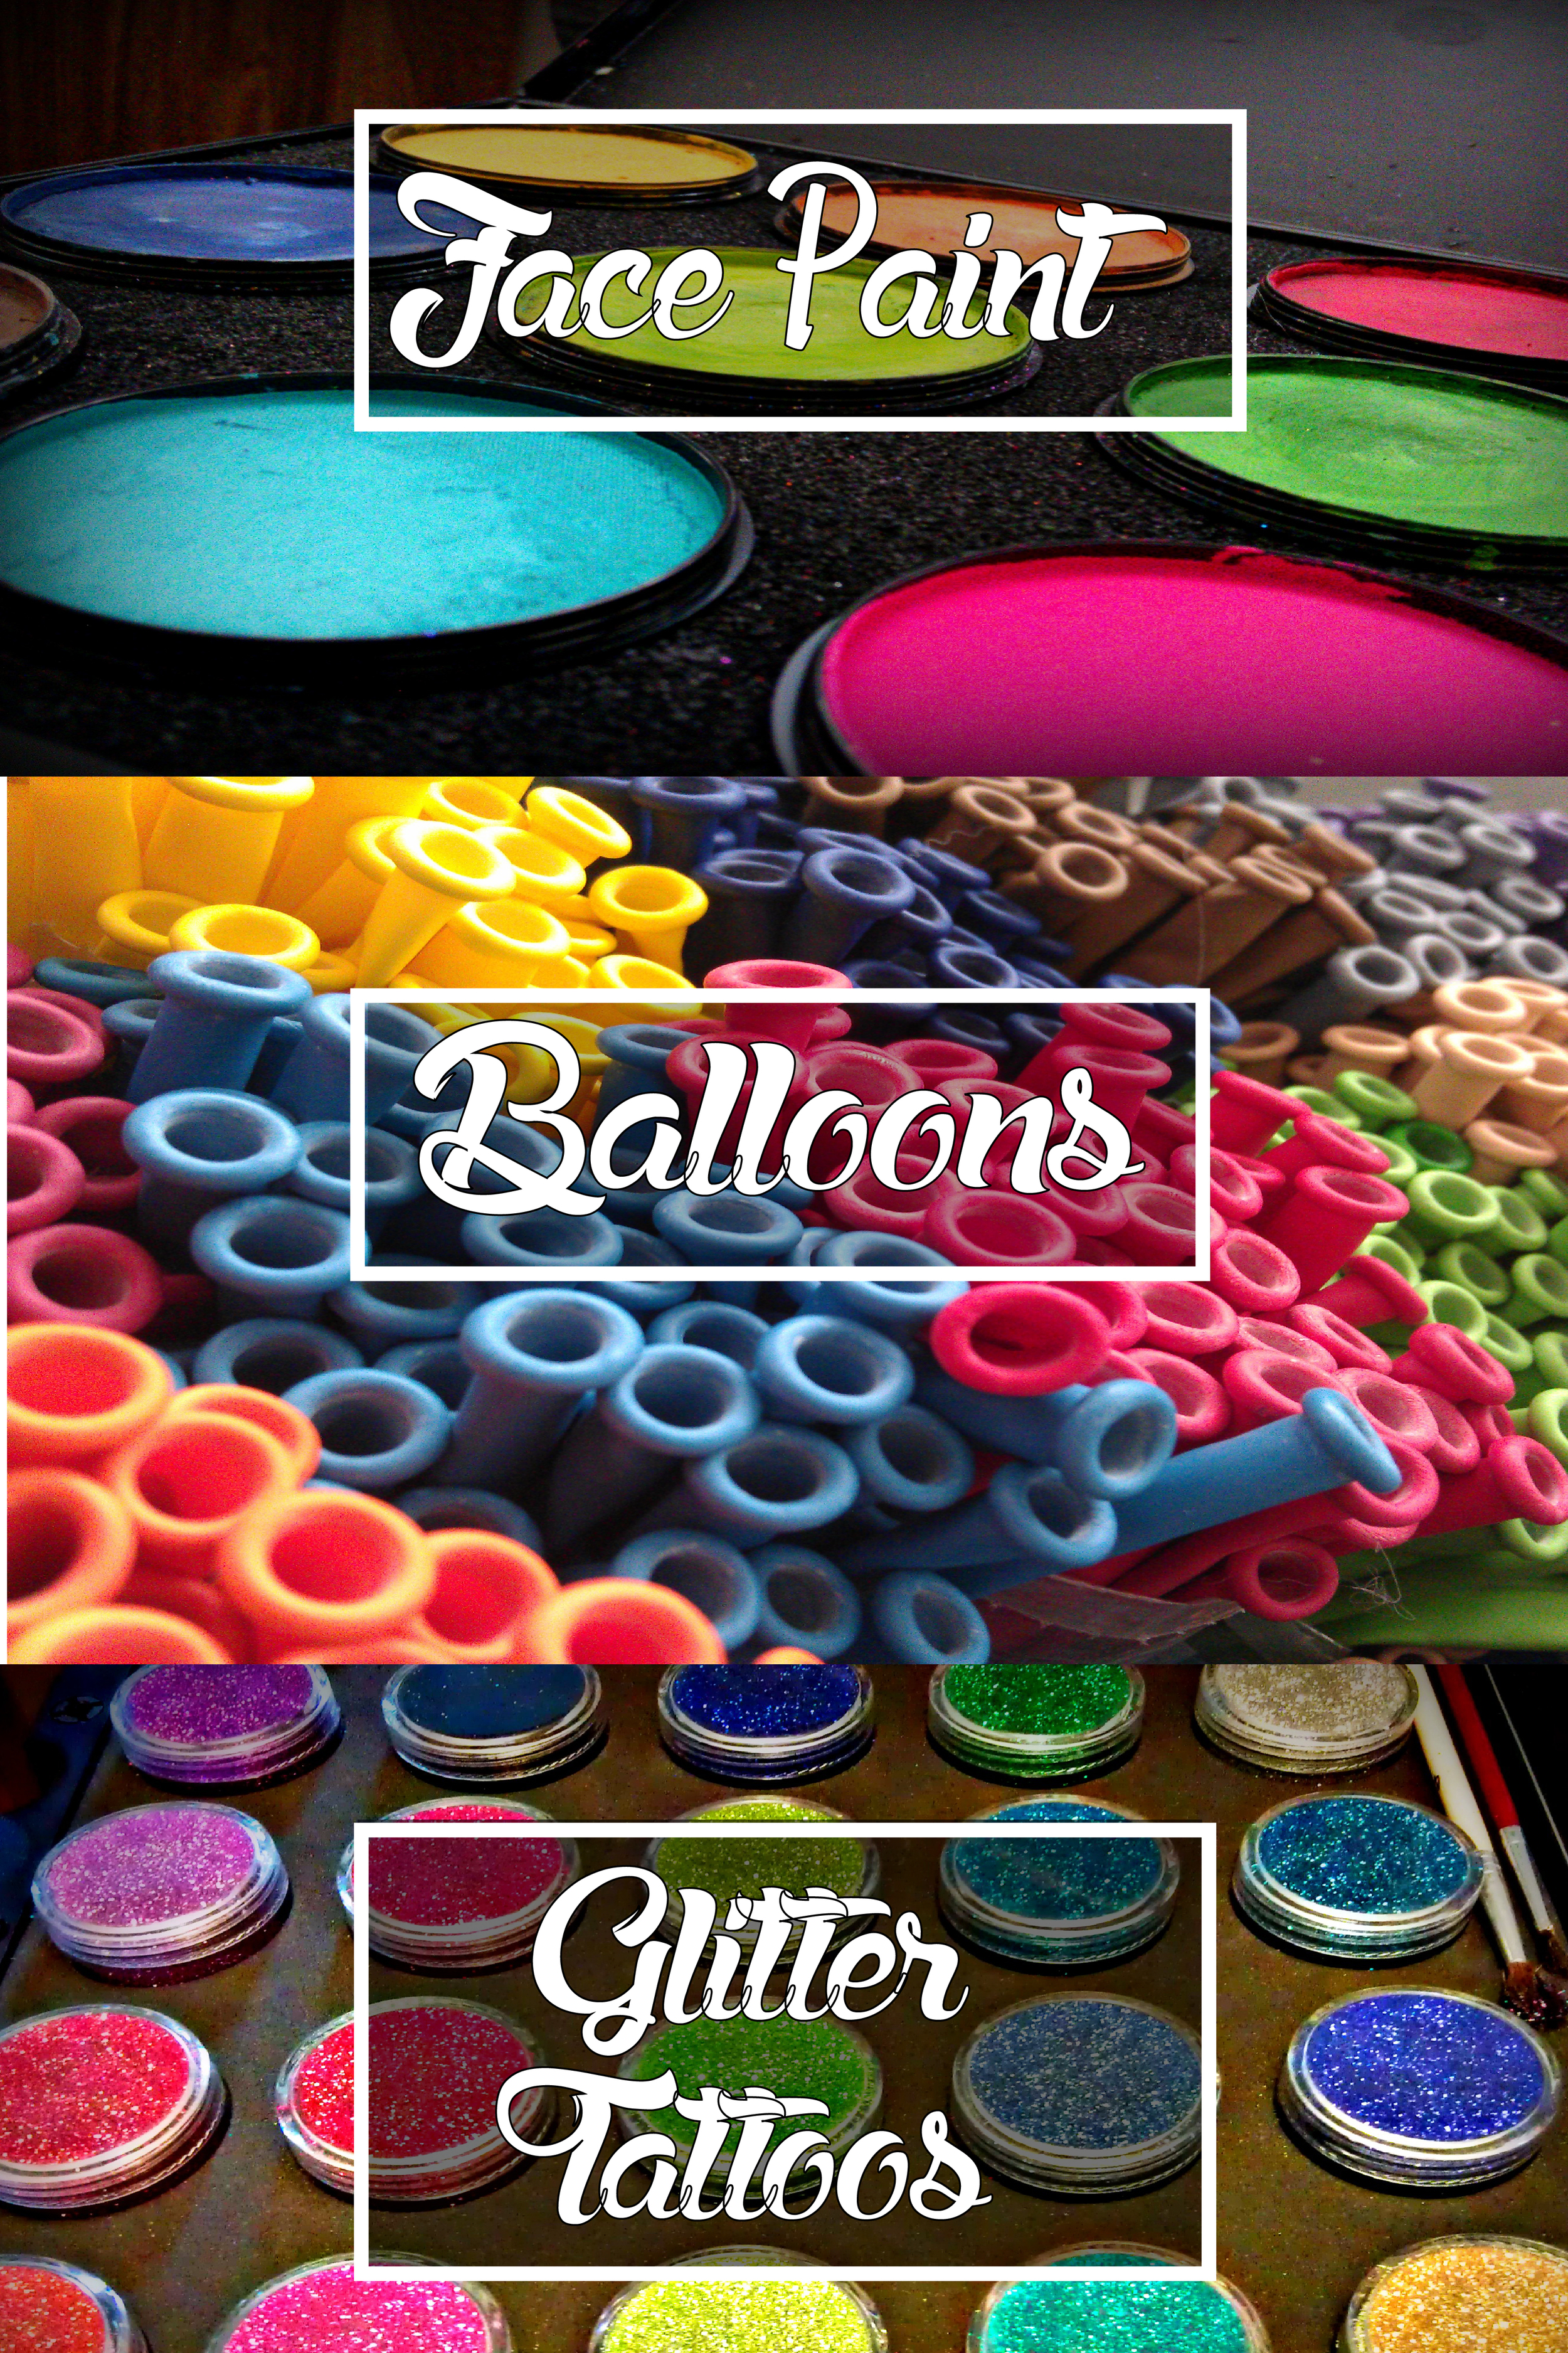 Galleries of Face Paints, Balloons, & Glitter Tattoos